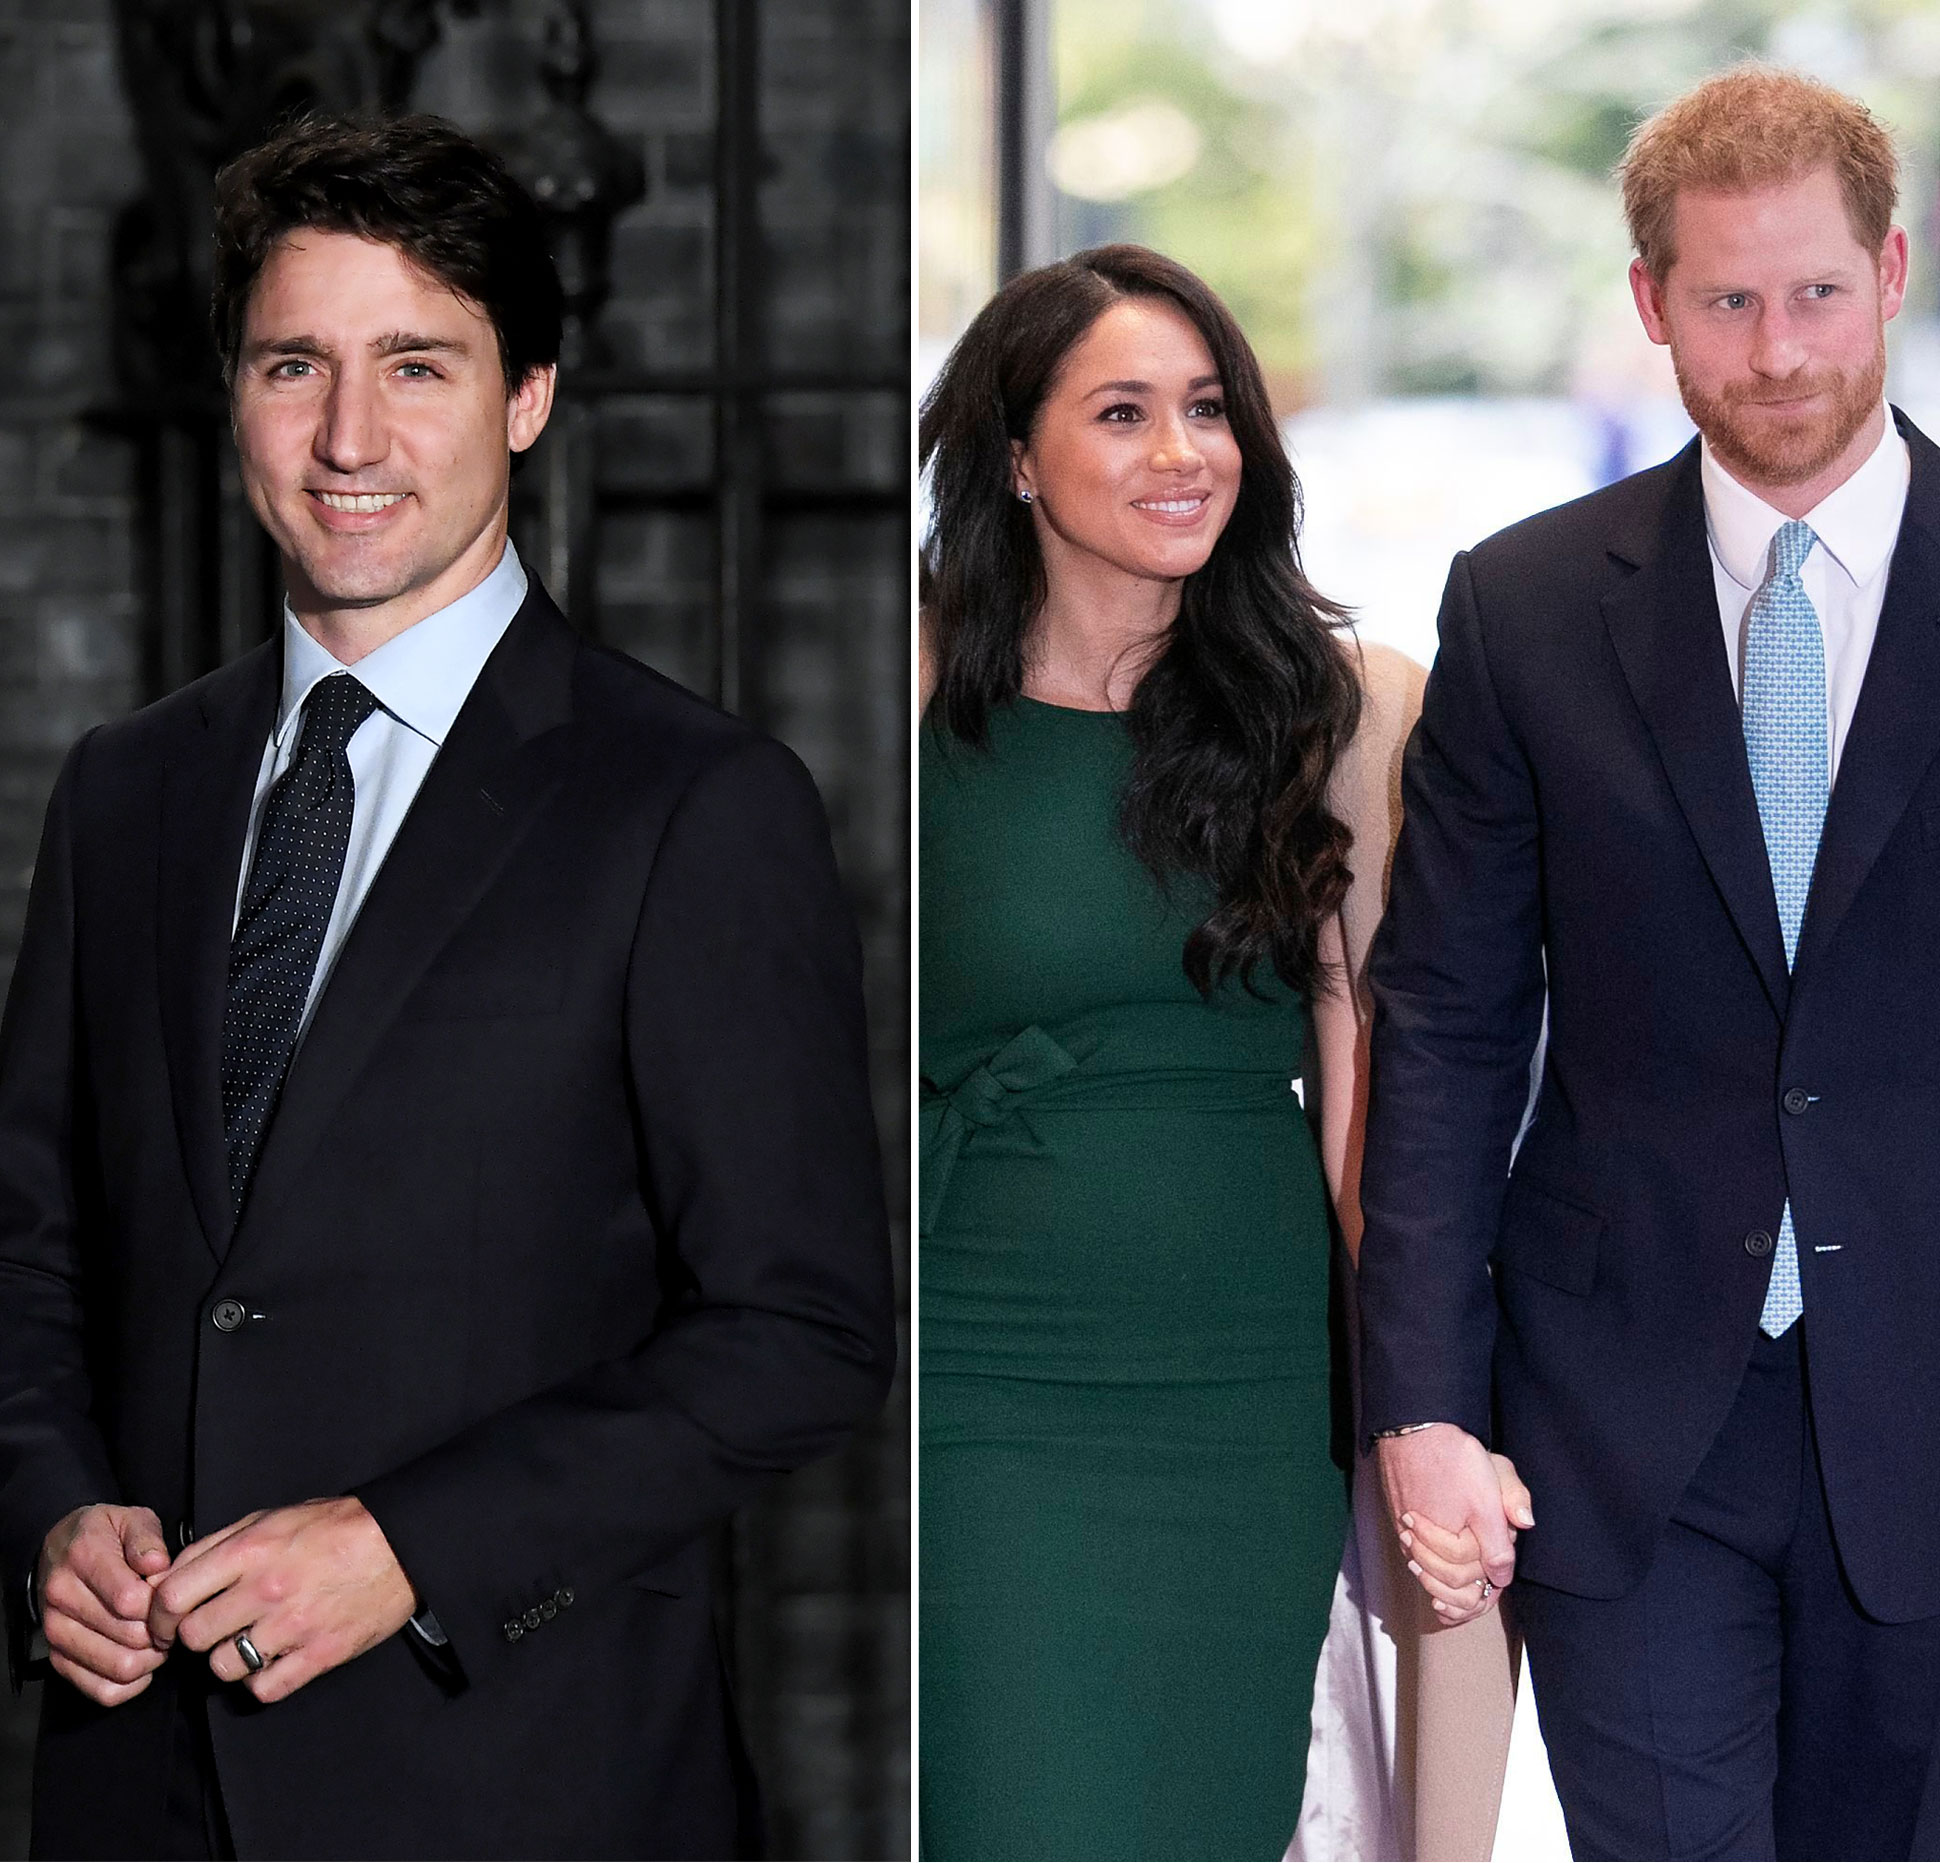 Justin Trudeau Welcomes Prince Harry, Duchess Meghan to Canada